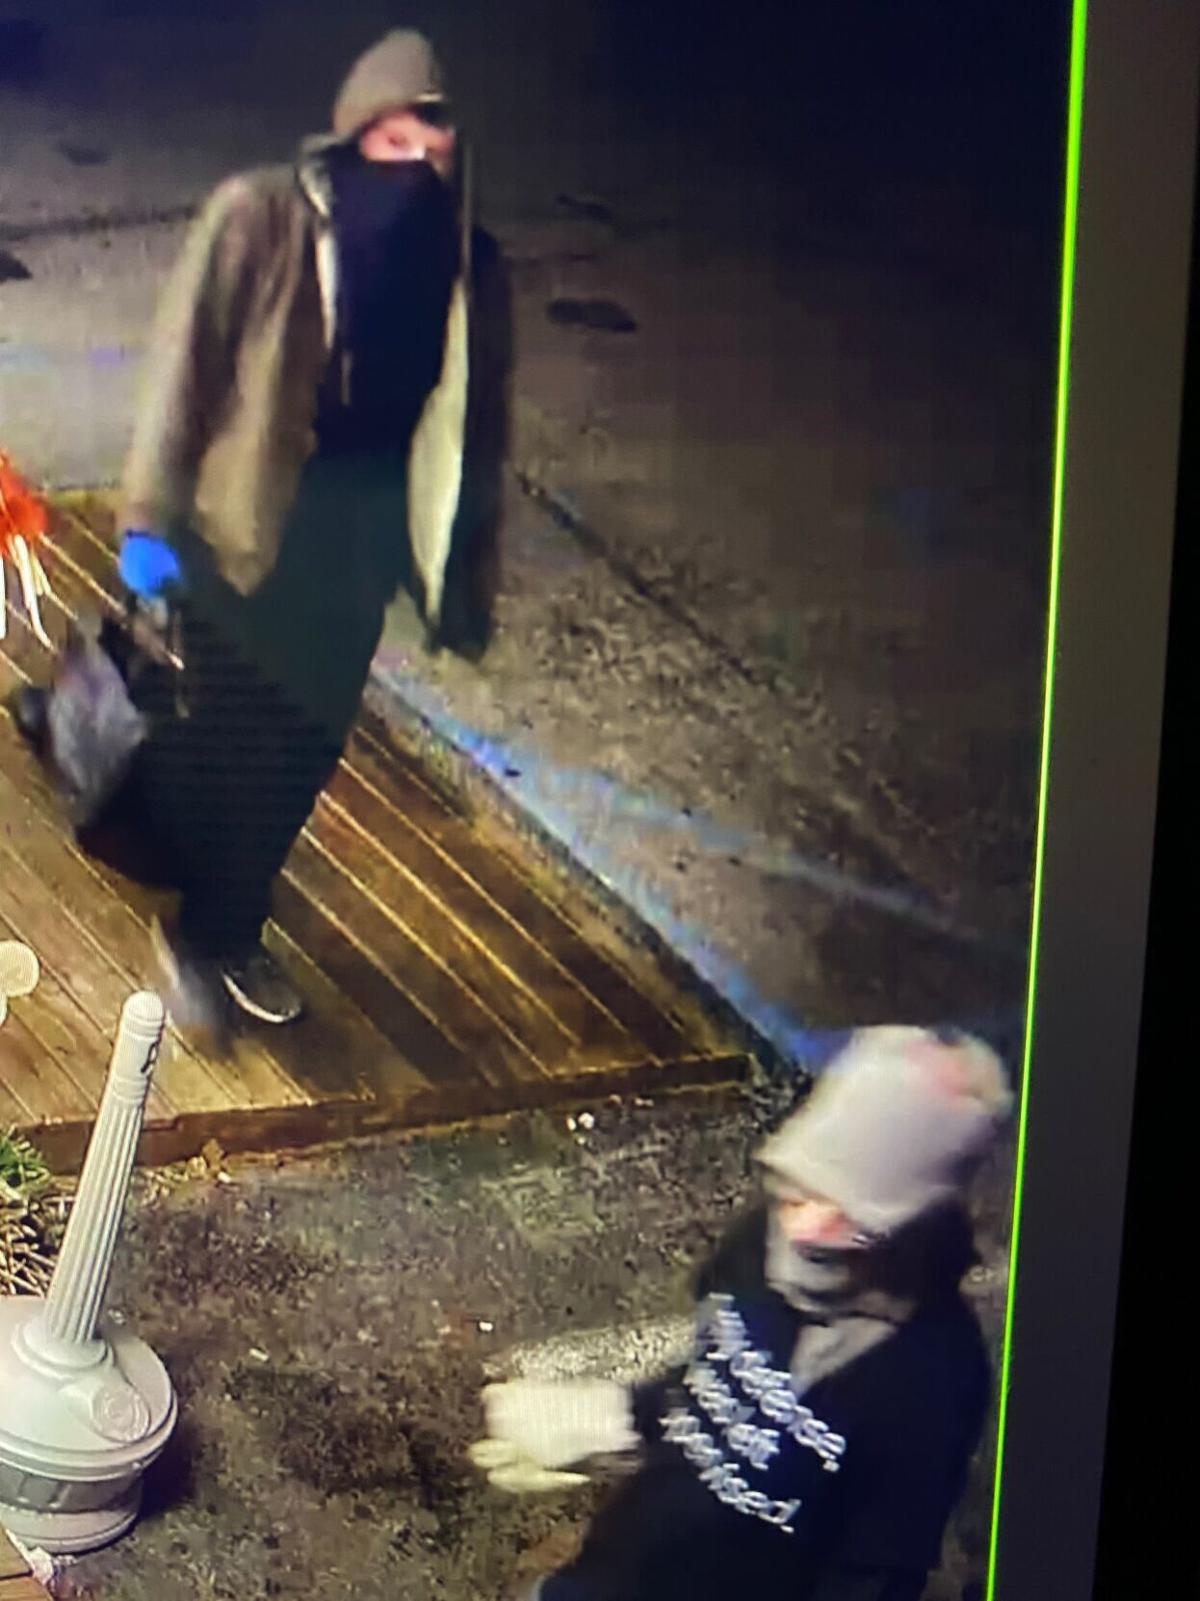 Suspects sought in Franklin County burglaries